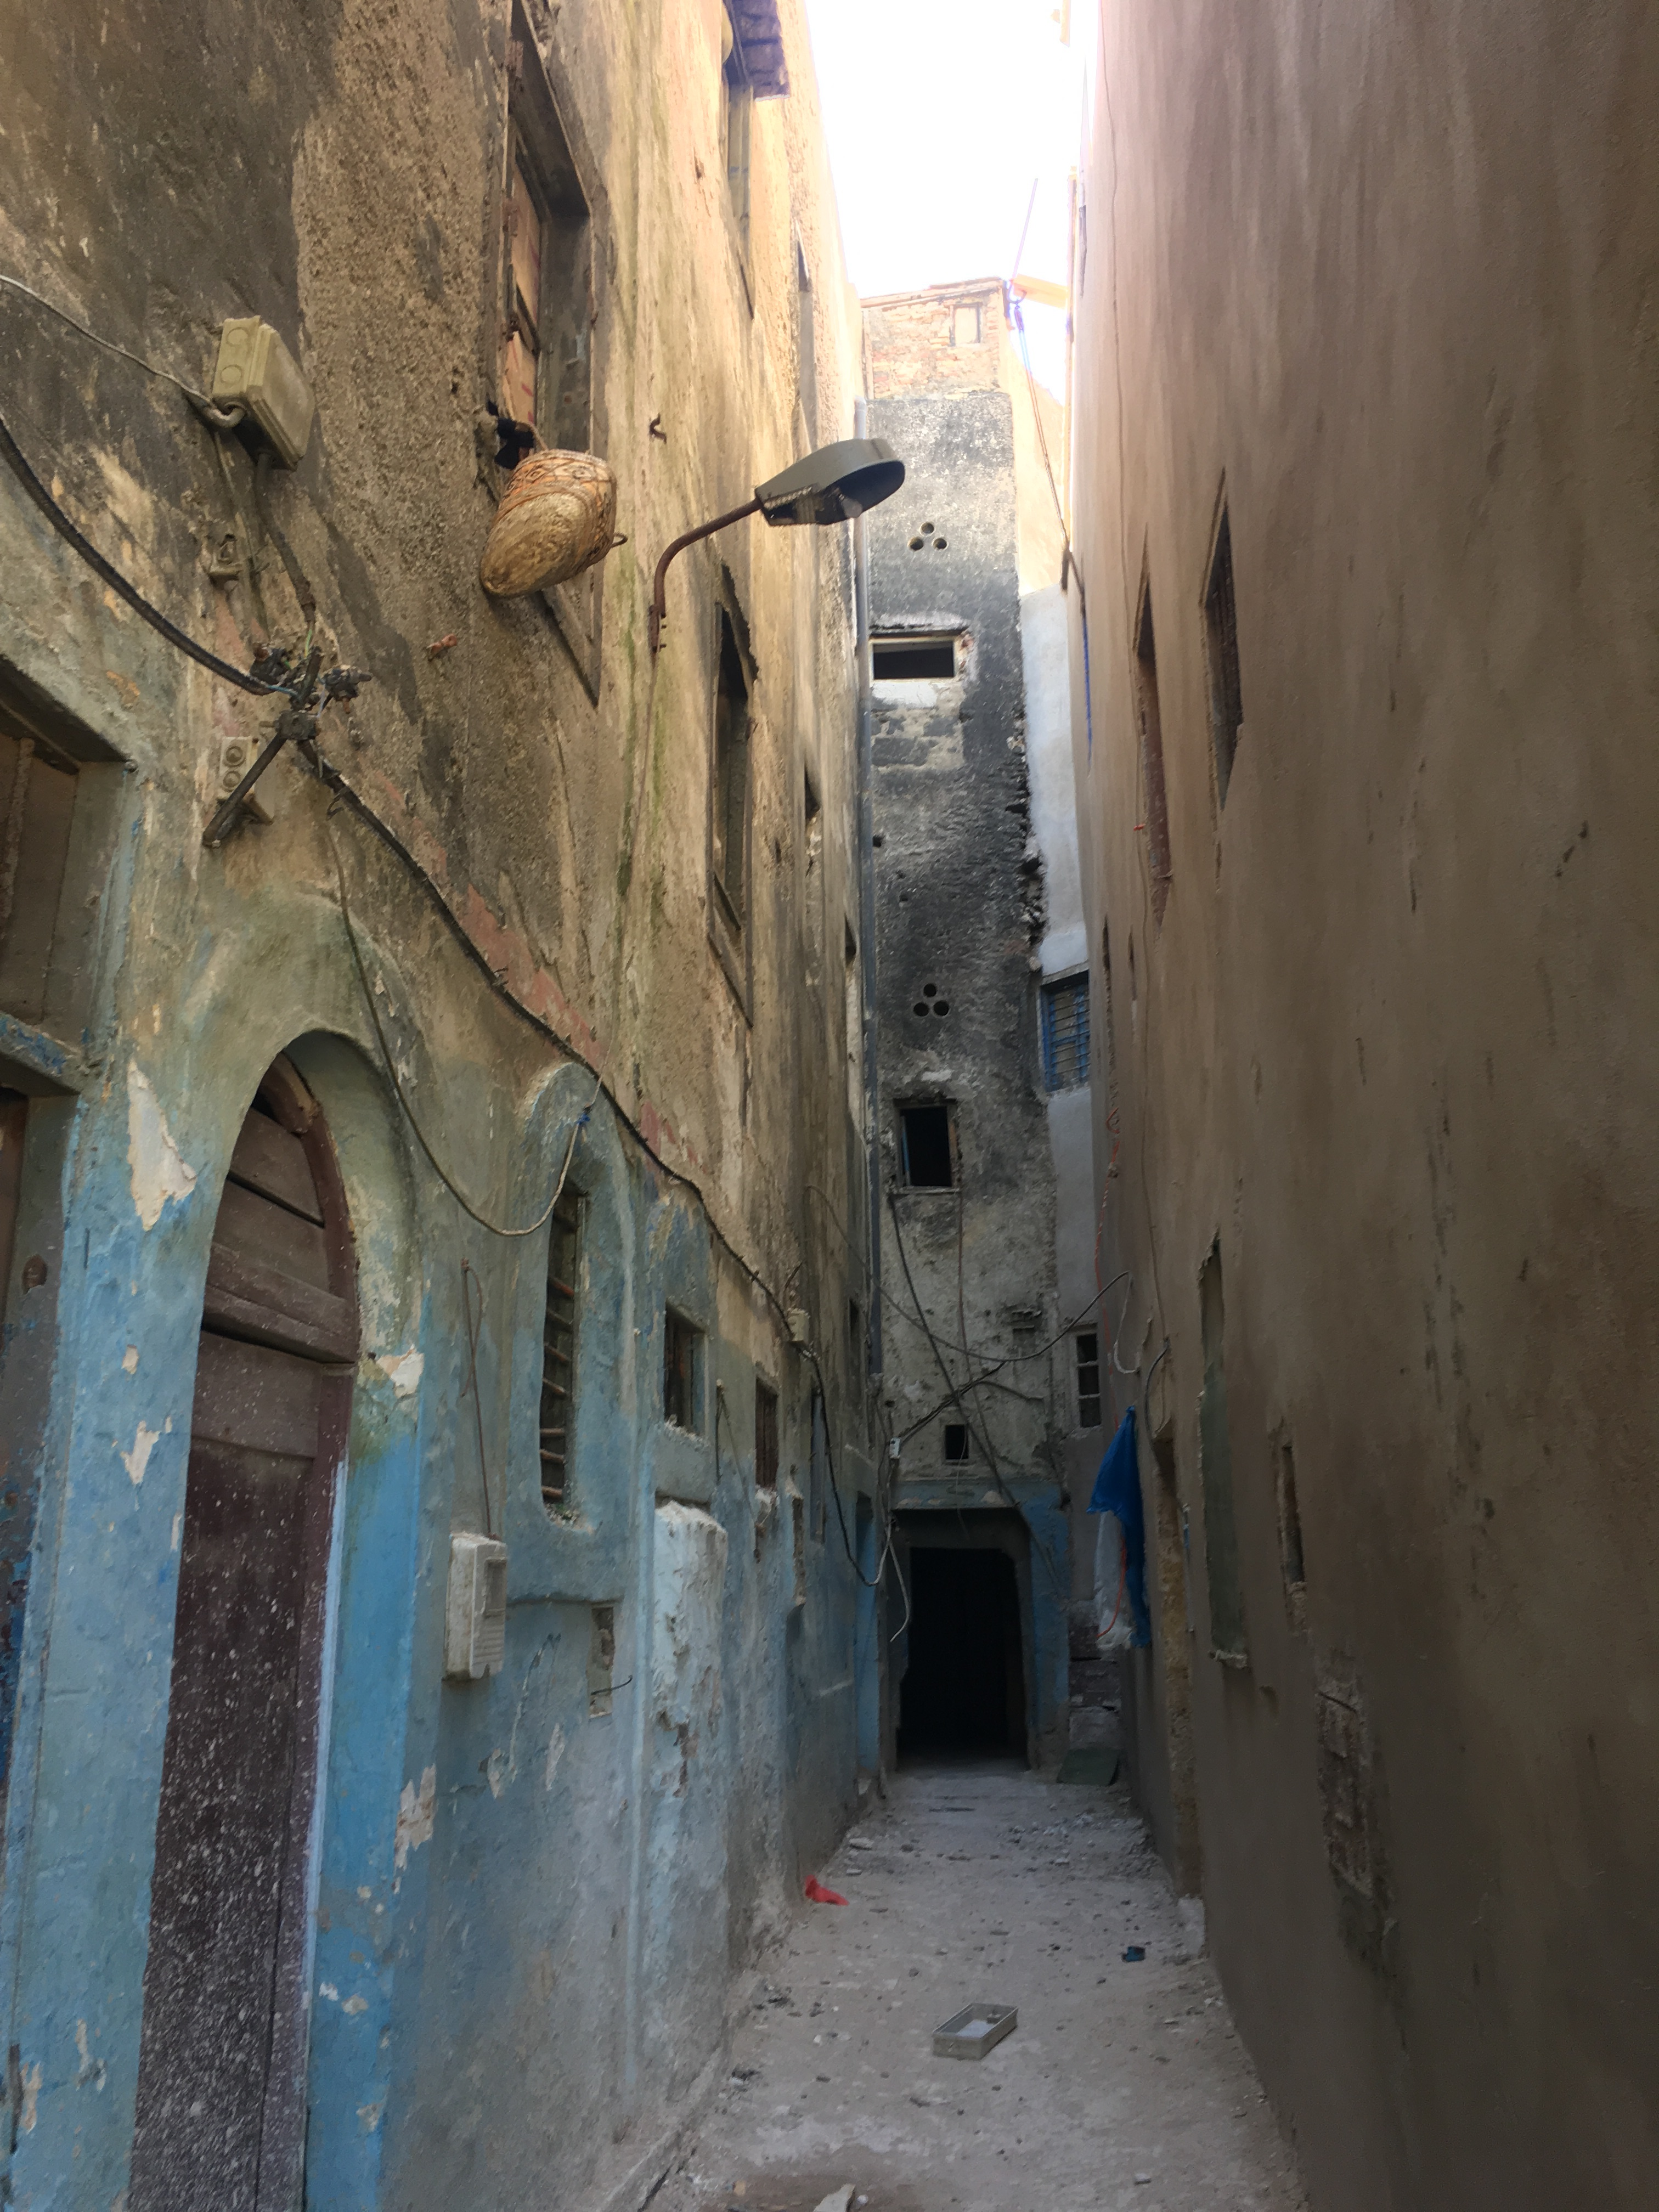 An alley in the mellah of Essaouira